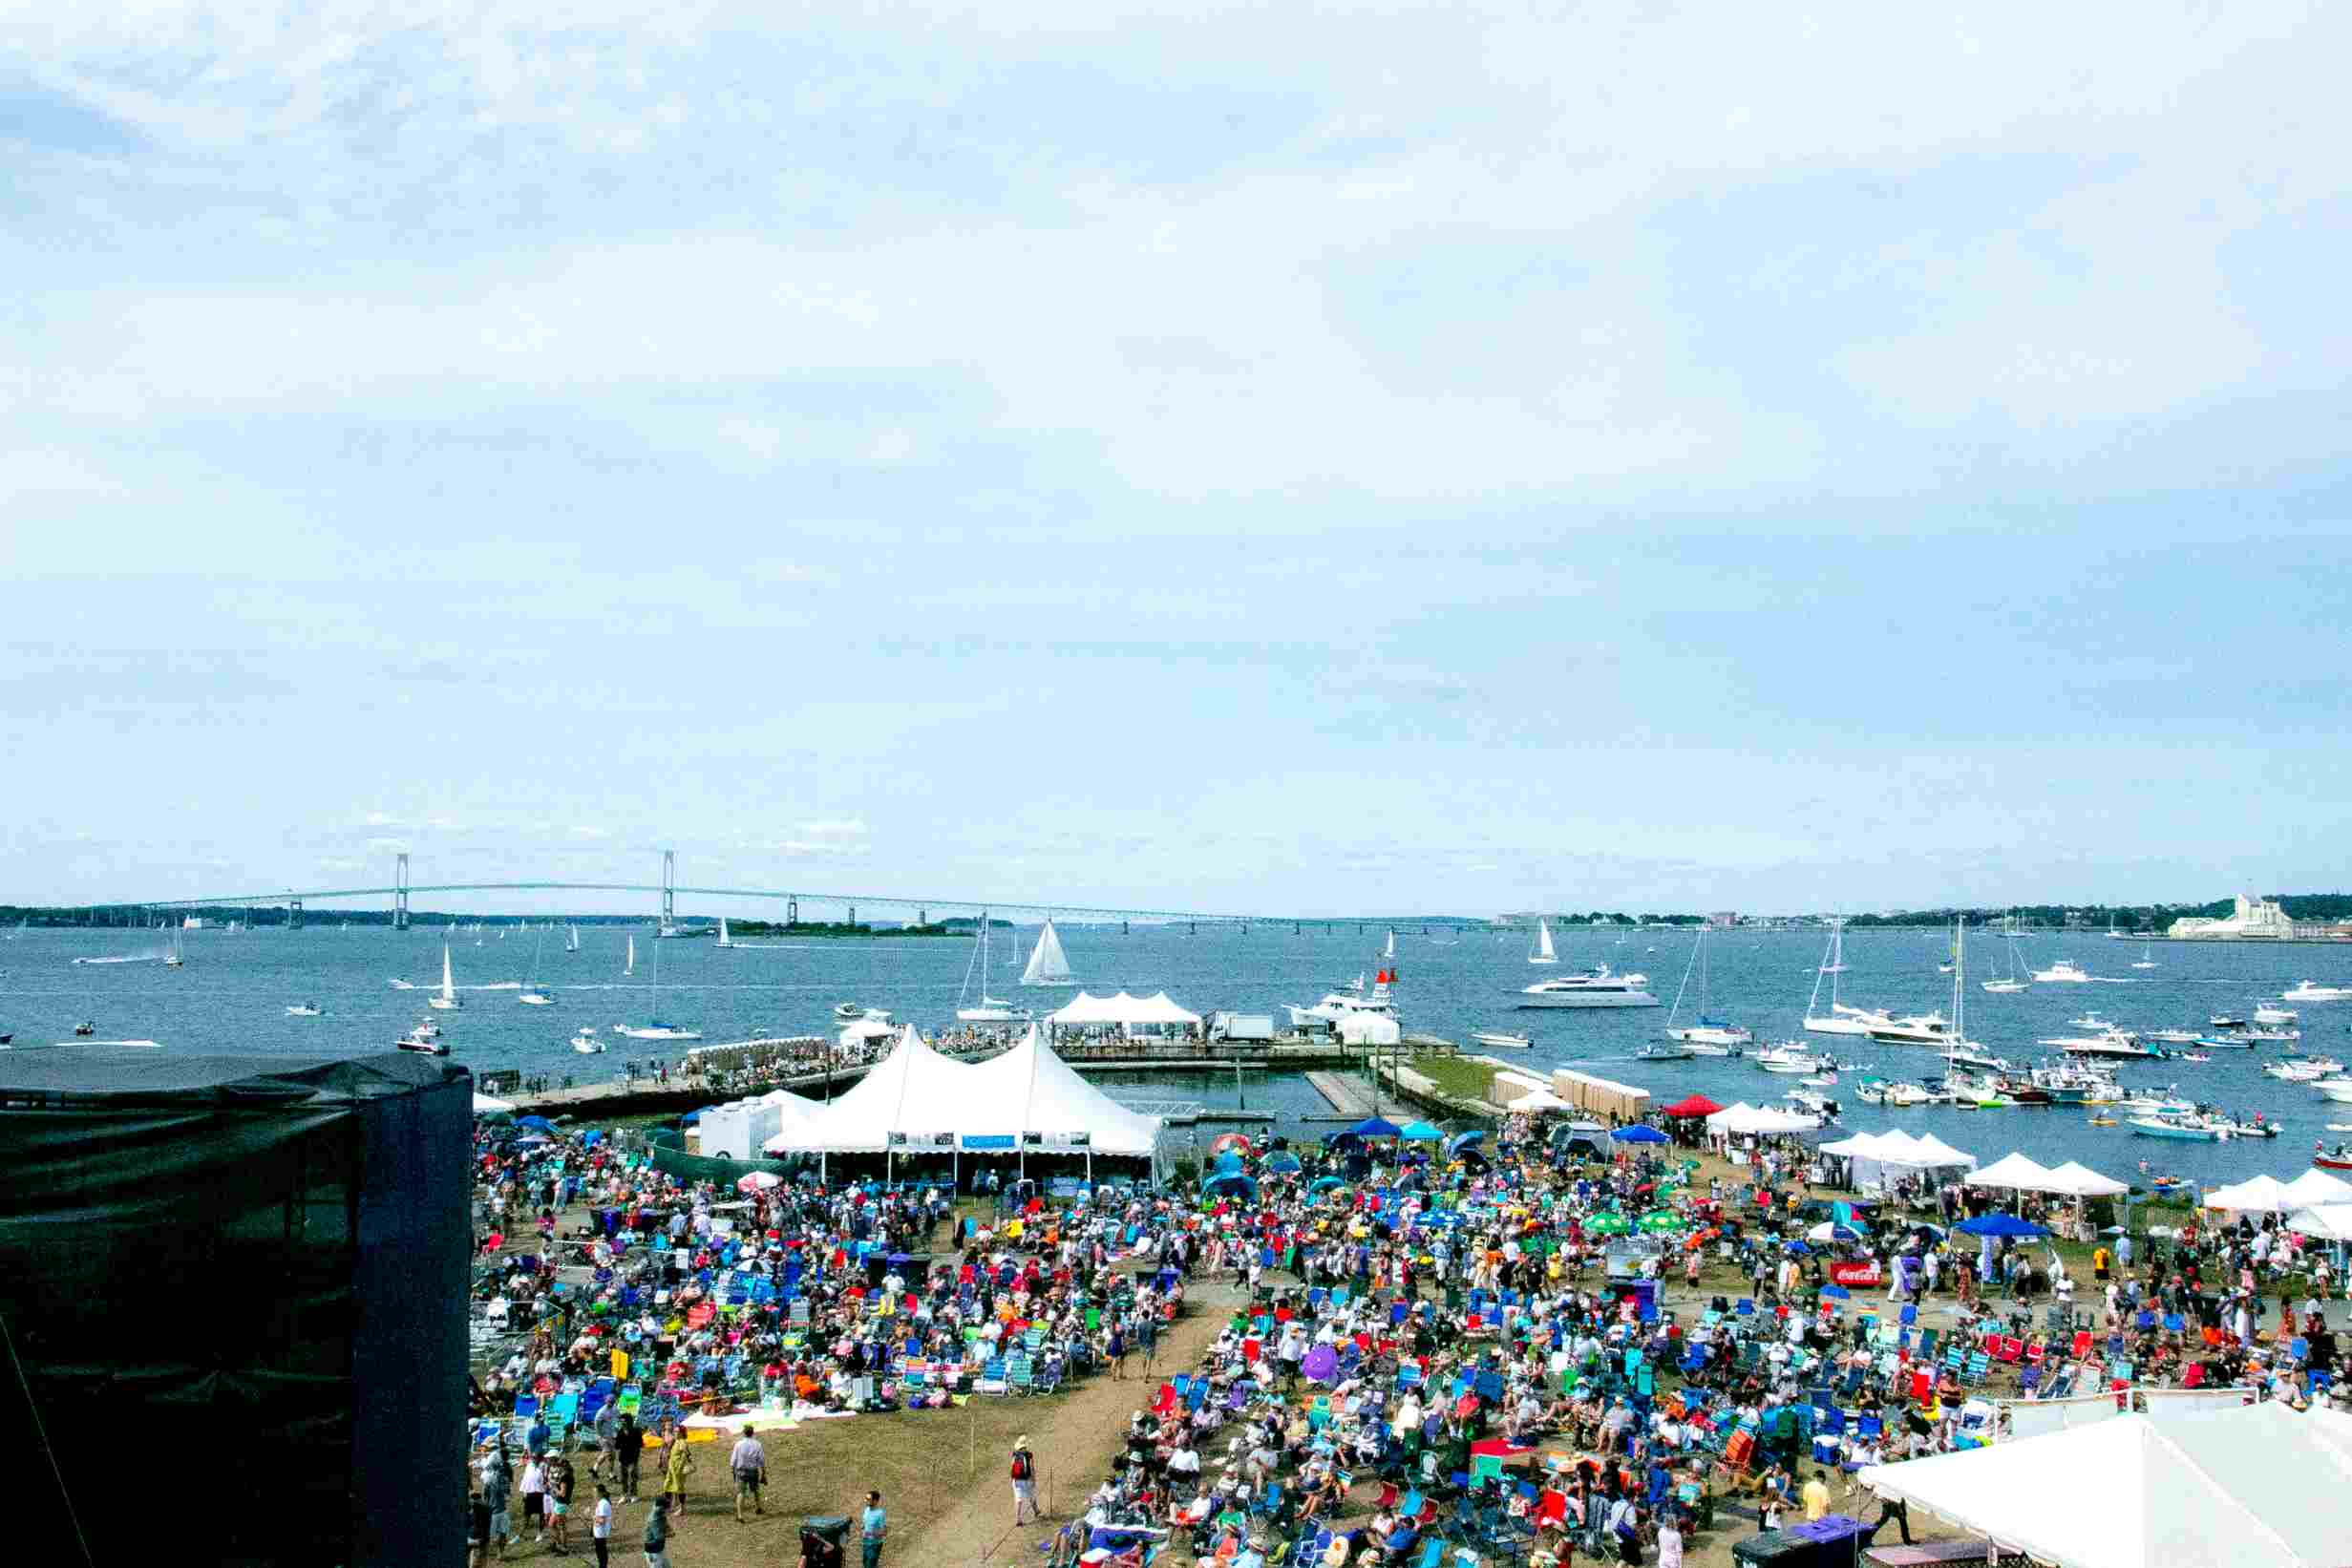 New England Summer Festivals A to Z for 2019